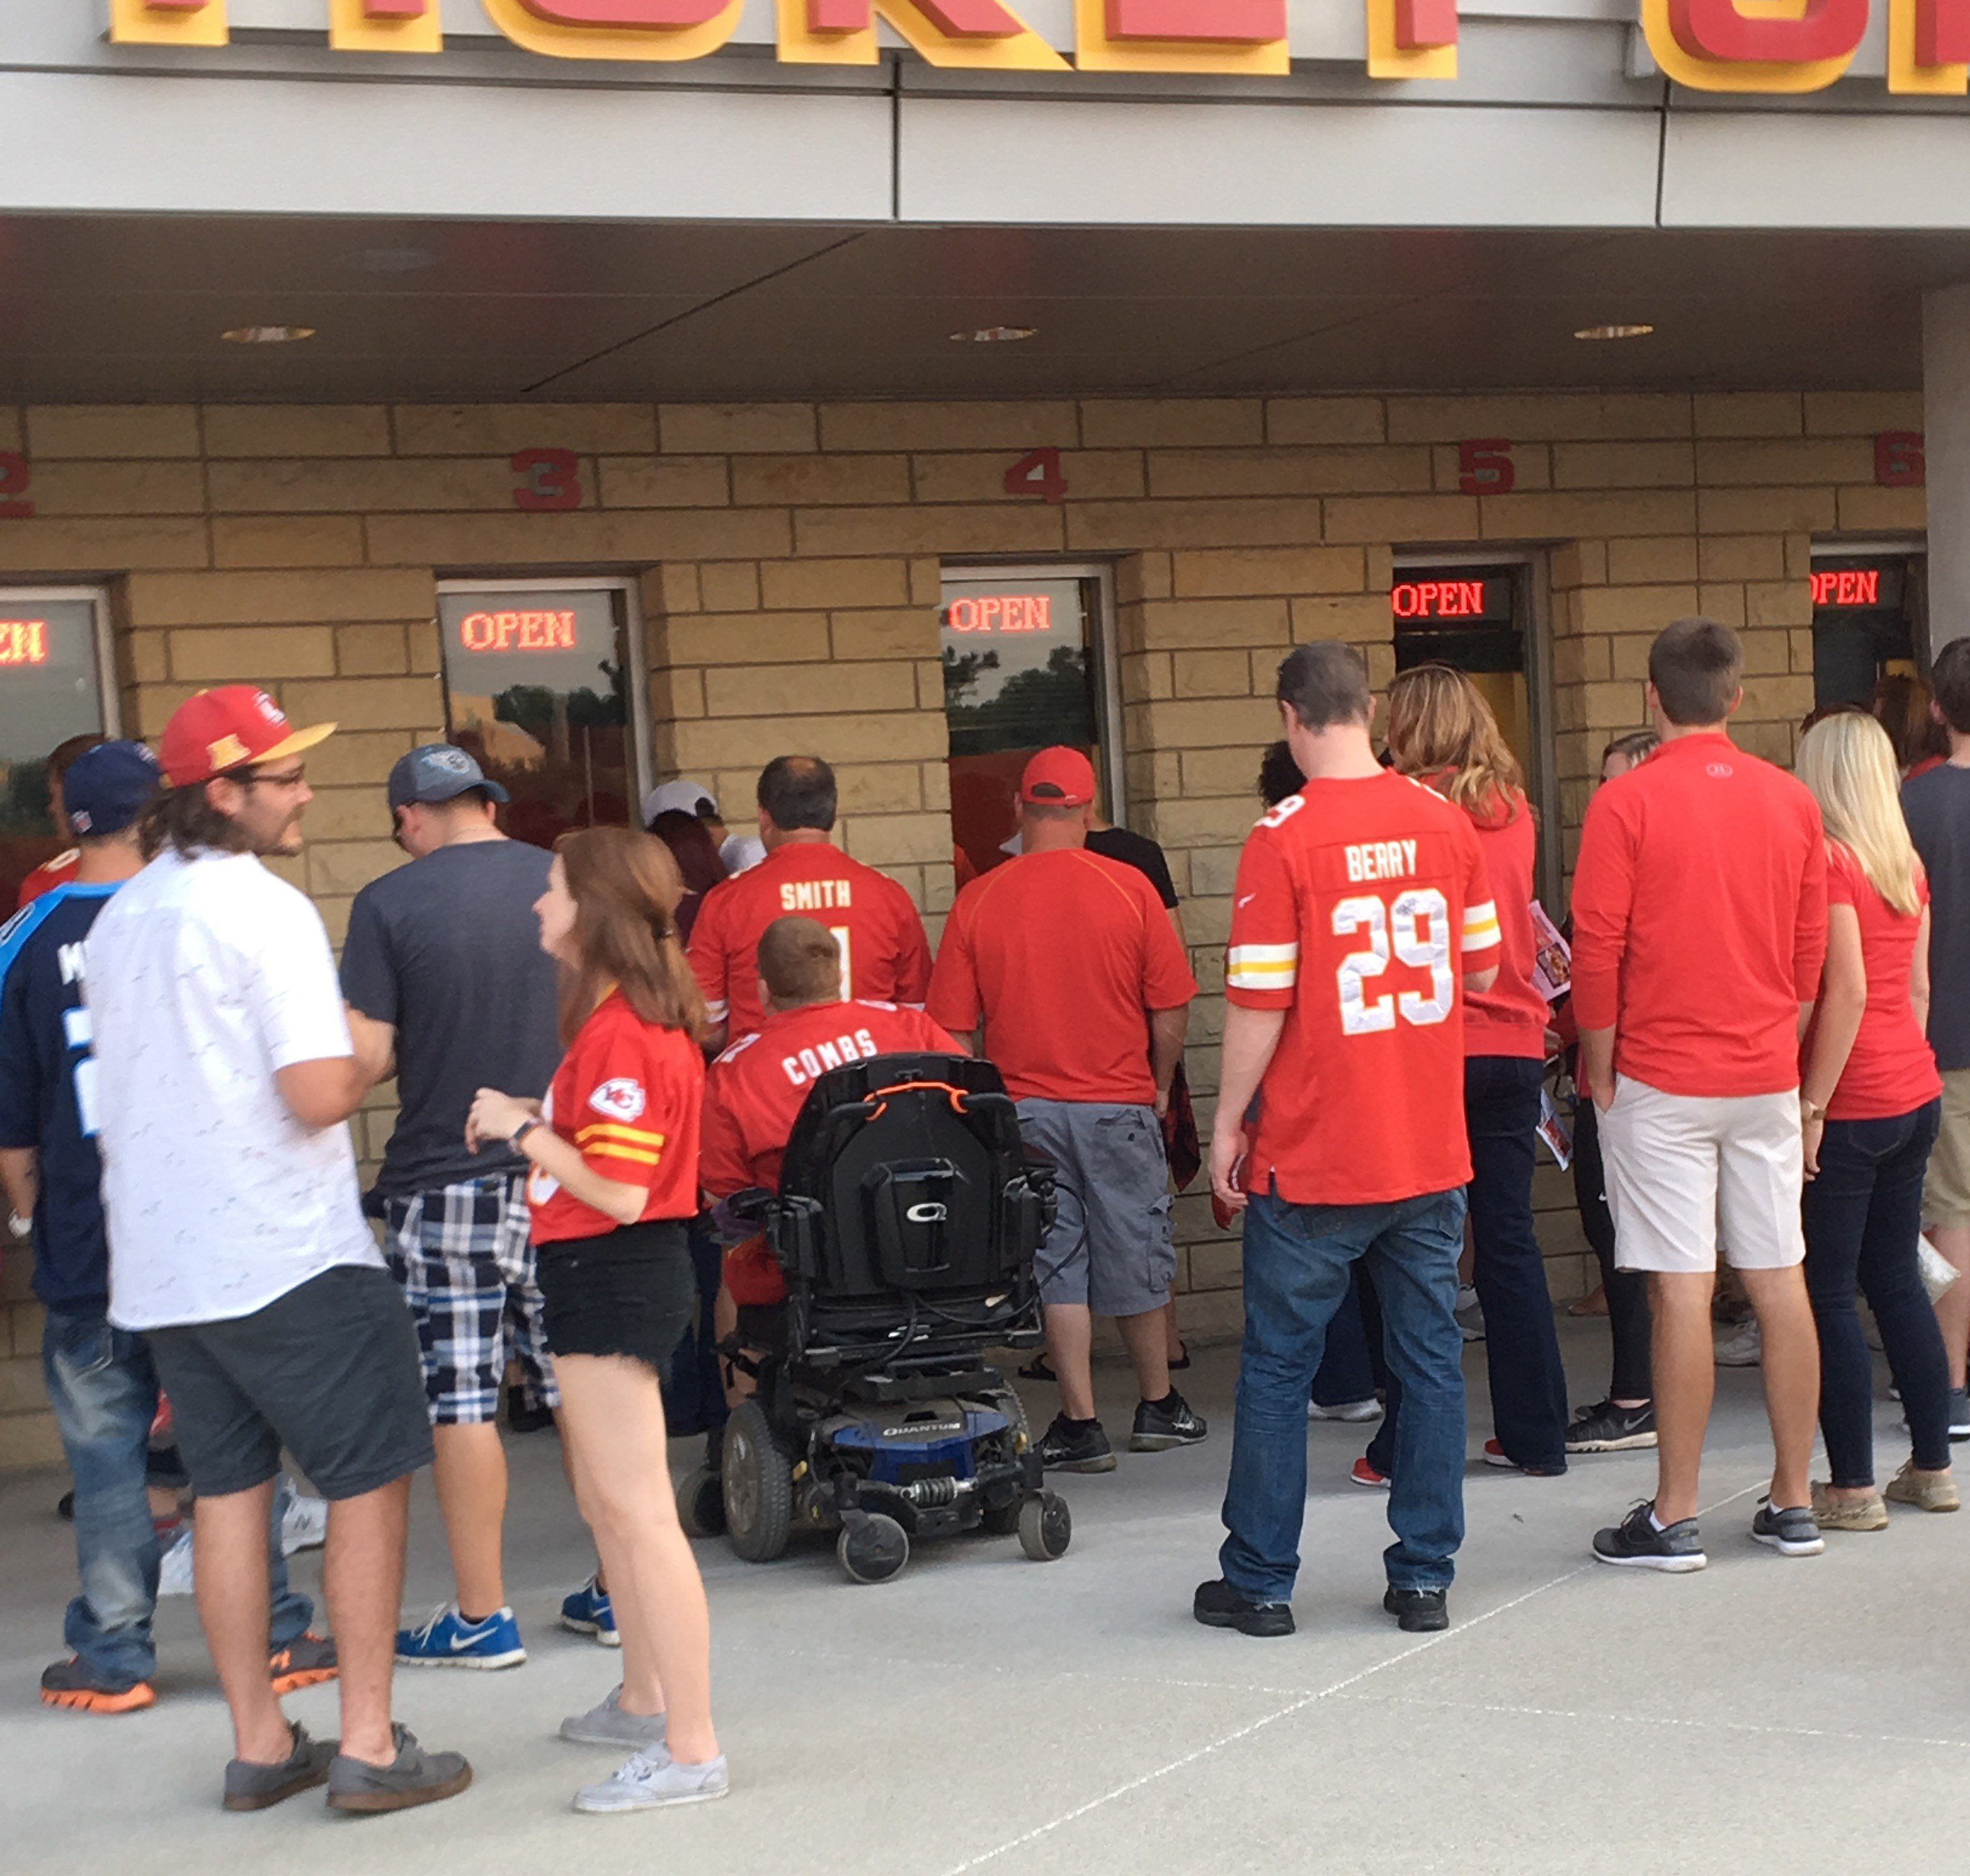 People in line waiting for ticket refunds. (Nick Sloan/KCTV)